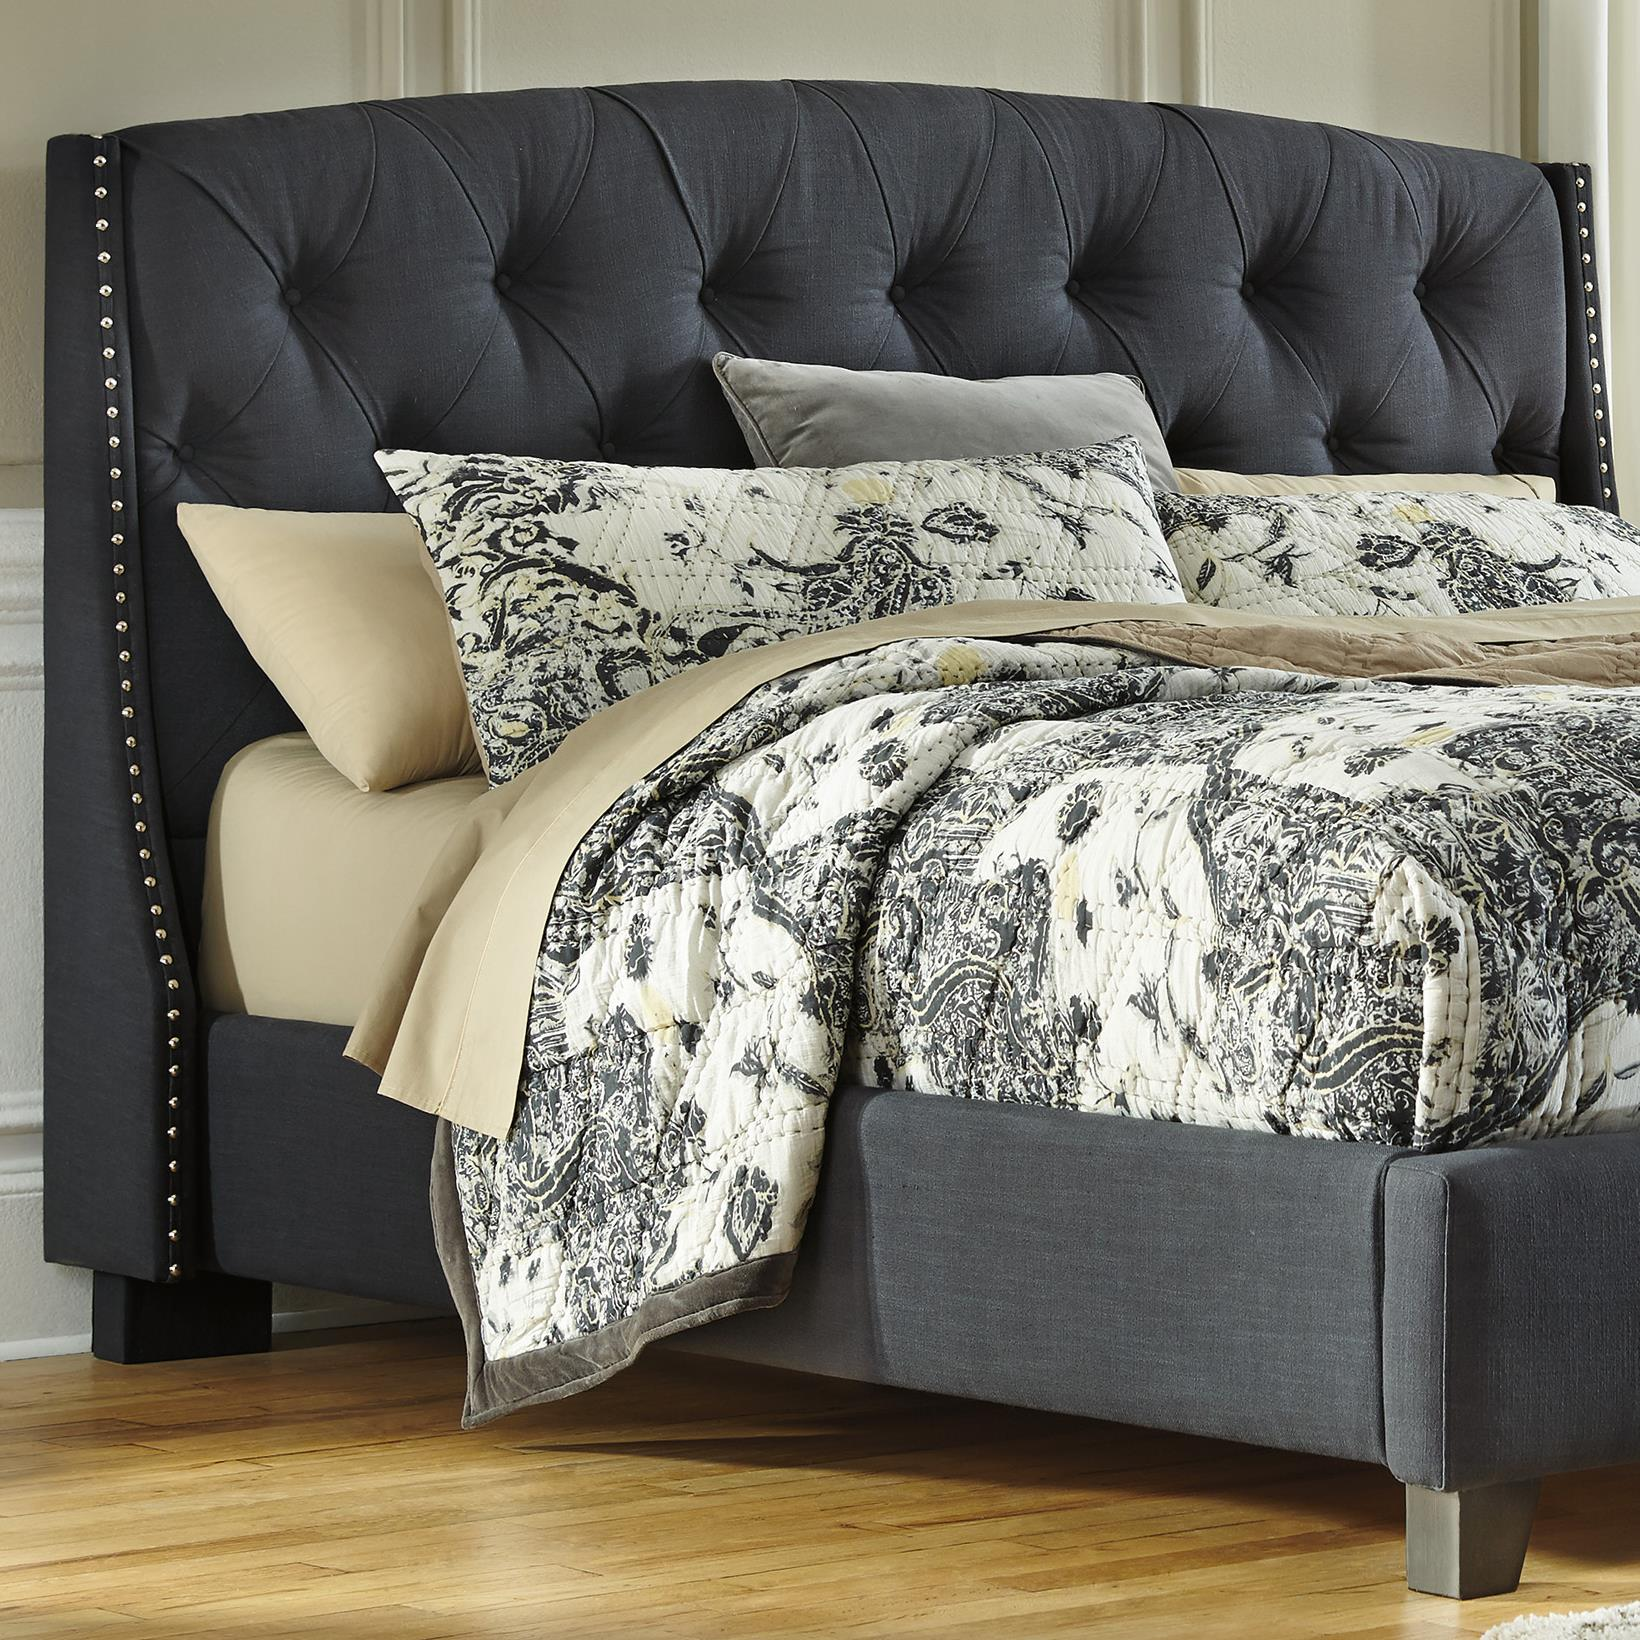 for bed and great ideas headboard galleries upholstered comforter size headboards tufted sets bedroom king